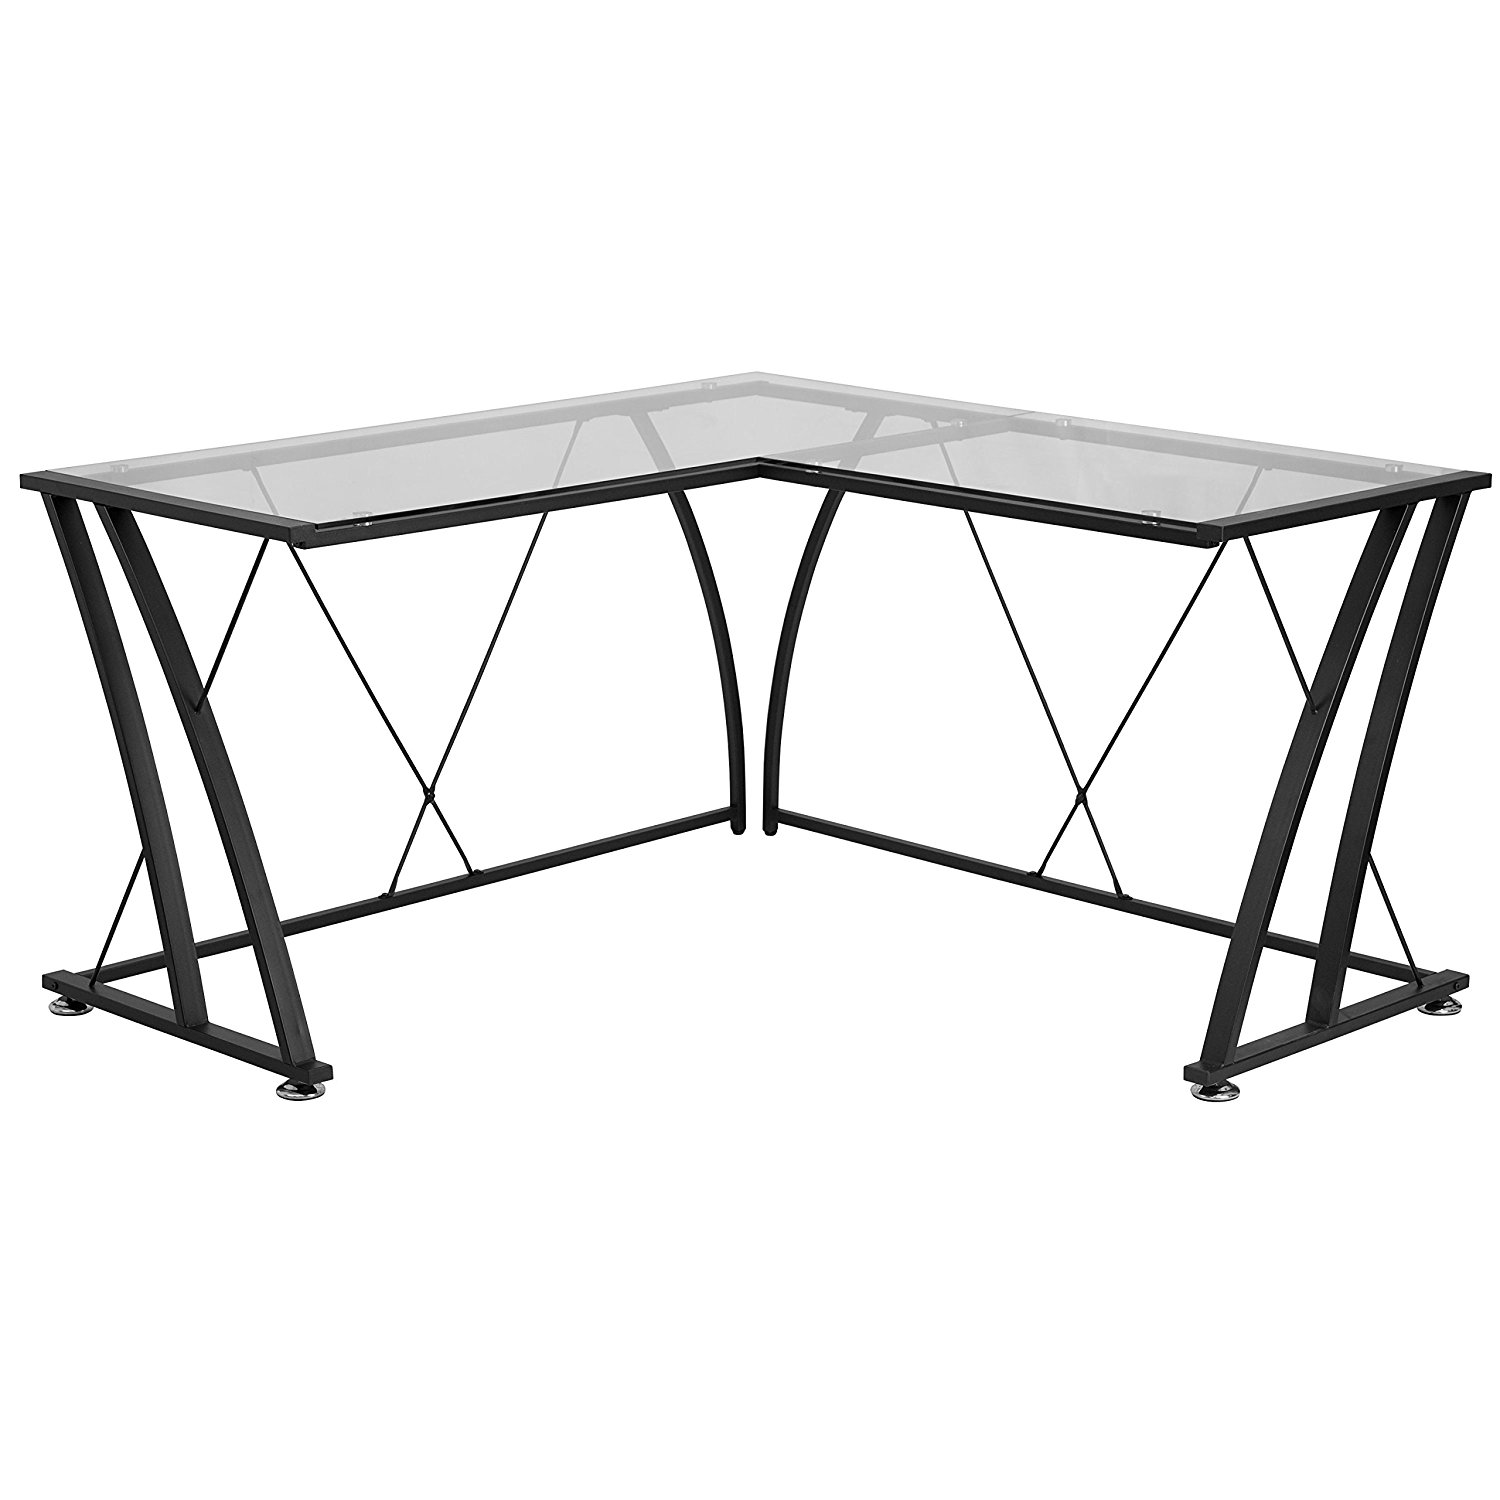 A Line Furniture Jigos L-Shaped Clear Tempered Glass Top Black Frame Computer Desk